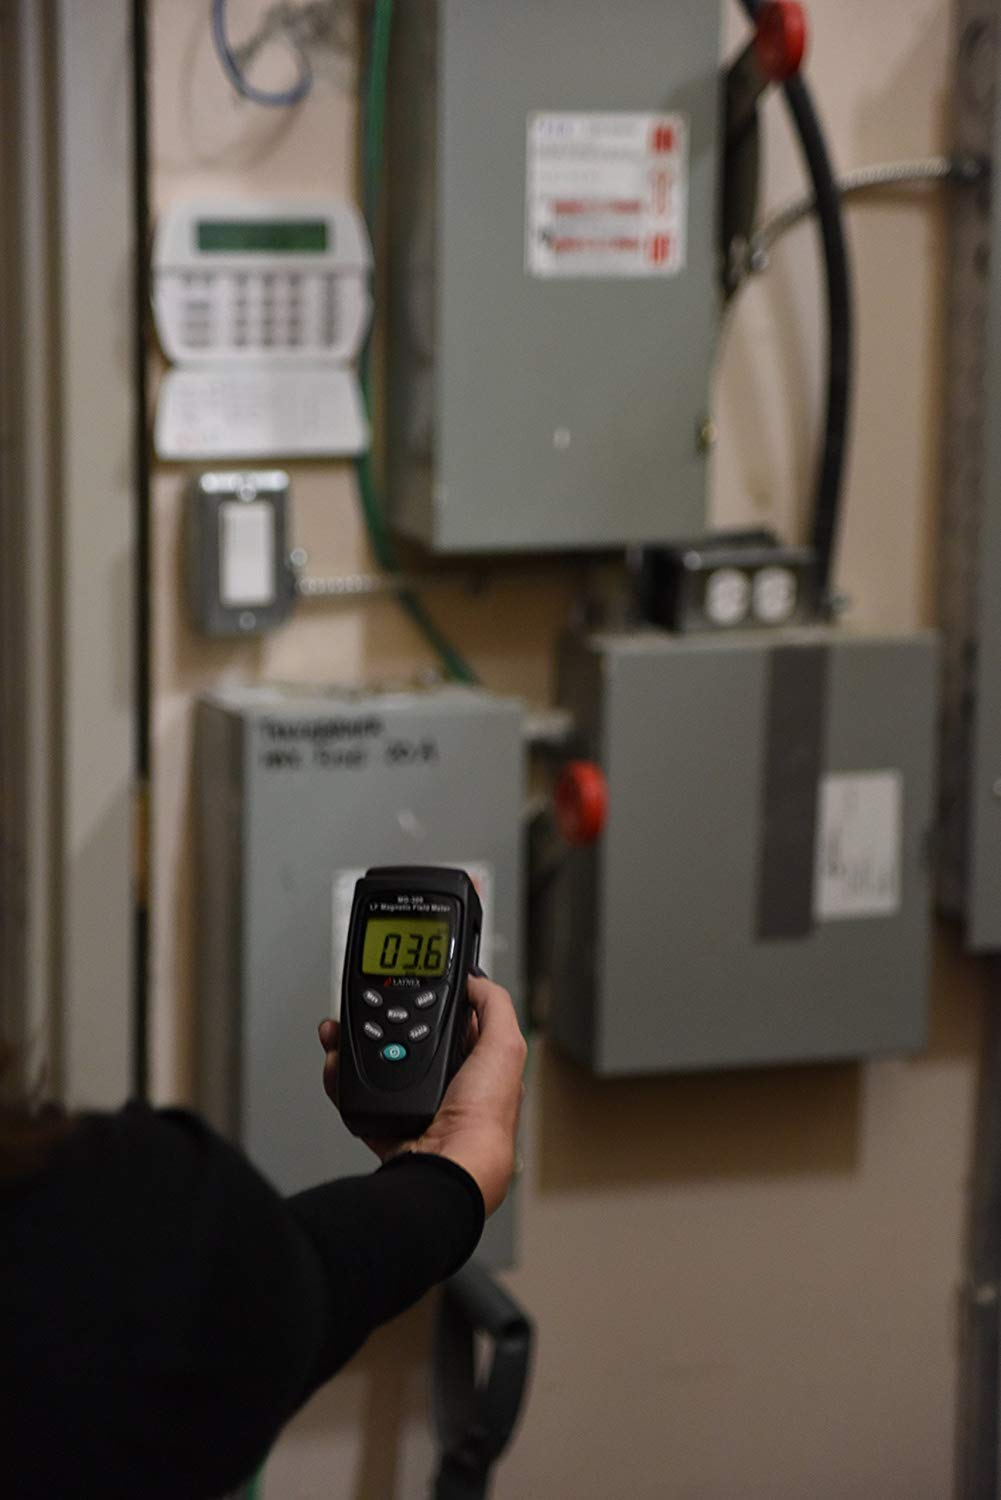 Measures EMF Radiation from High-Power Transmission Lines LATNEX MG-300 LF magnetic Field Meter Appliances Used for EMF Home Inspectios LATNEX ® Electrical Wires